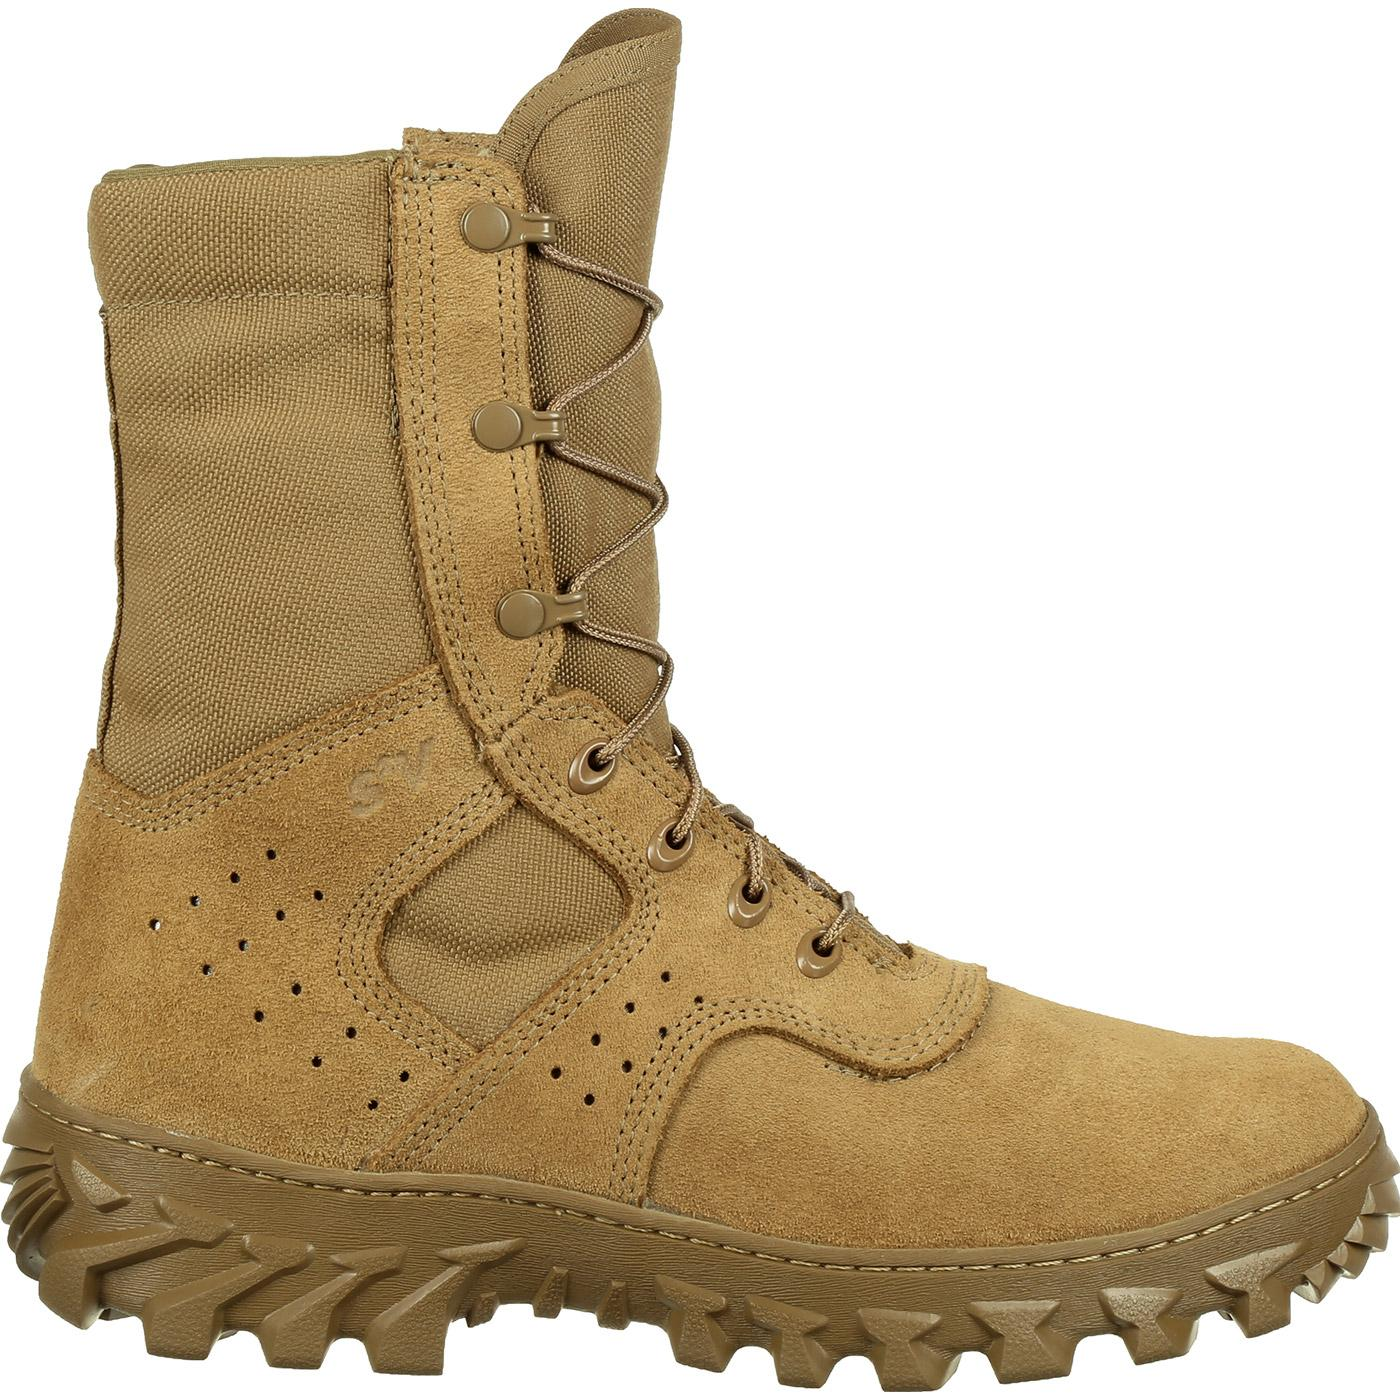 Rocky S2v Enhanced Jungle Boot With Puncture Resistance